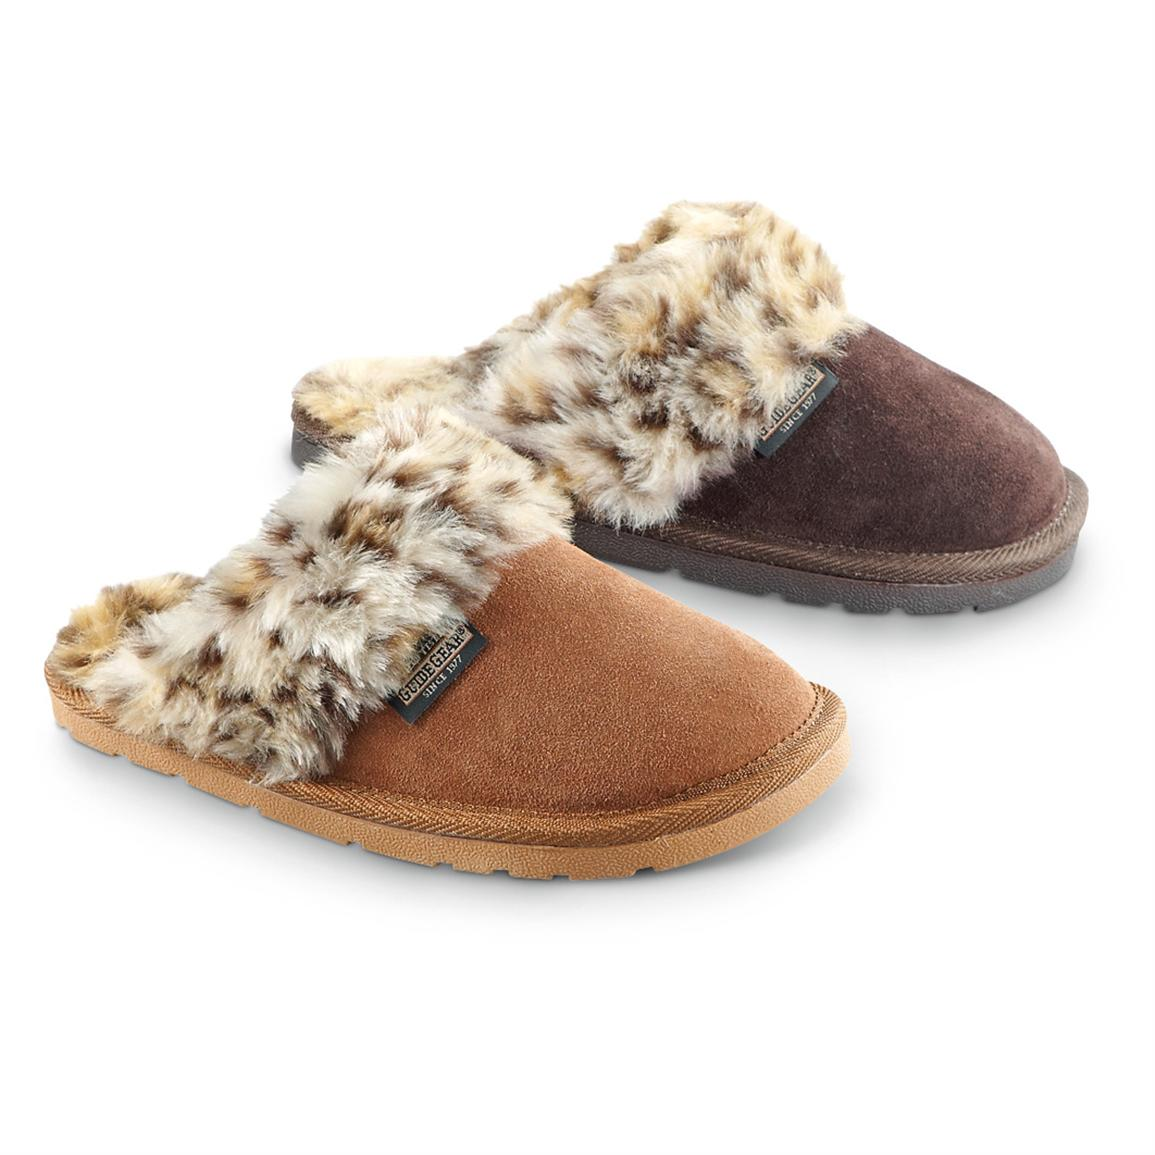 Women's Guide Gear® Leopard Fluff Slippers • Allspice or Rootbeer